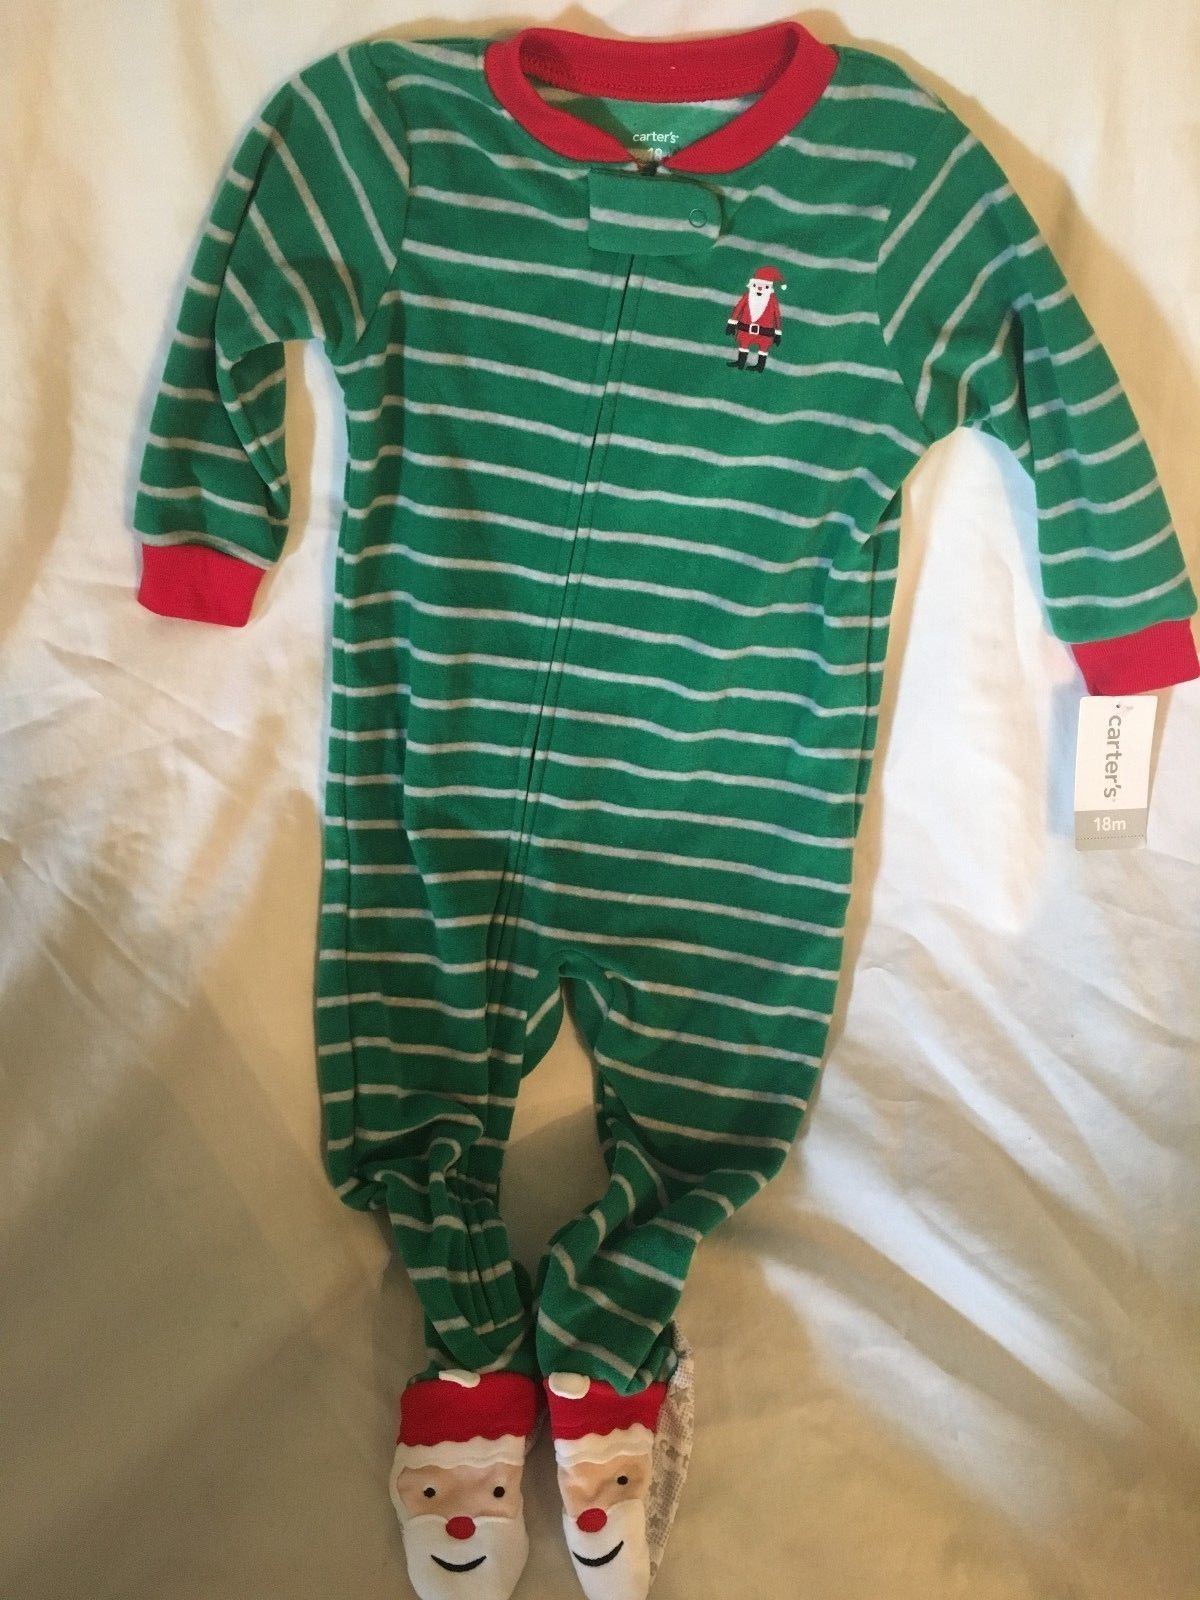 8da6dc2e0 Sleepwear 163400  Carters 18 Month Santa Claus Christmas Long Sleeve ...